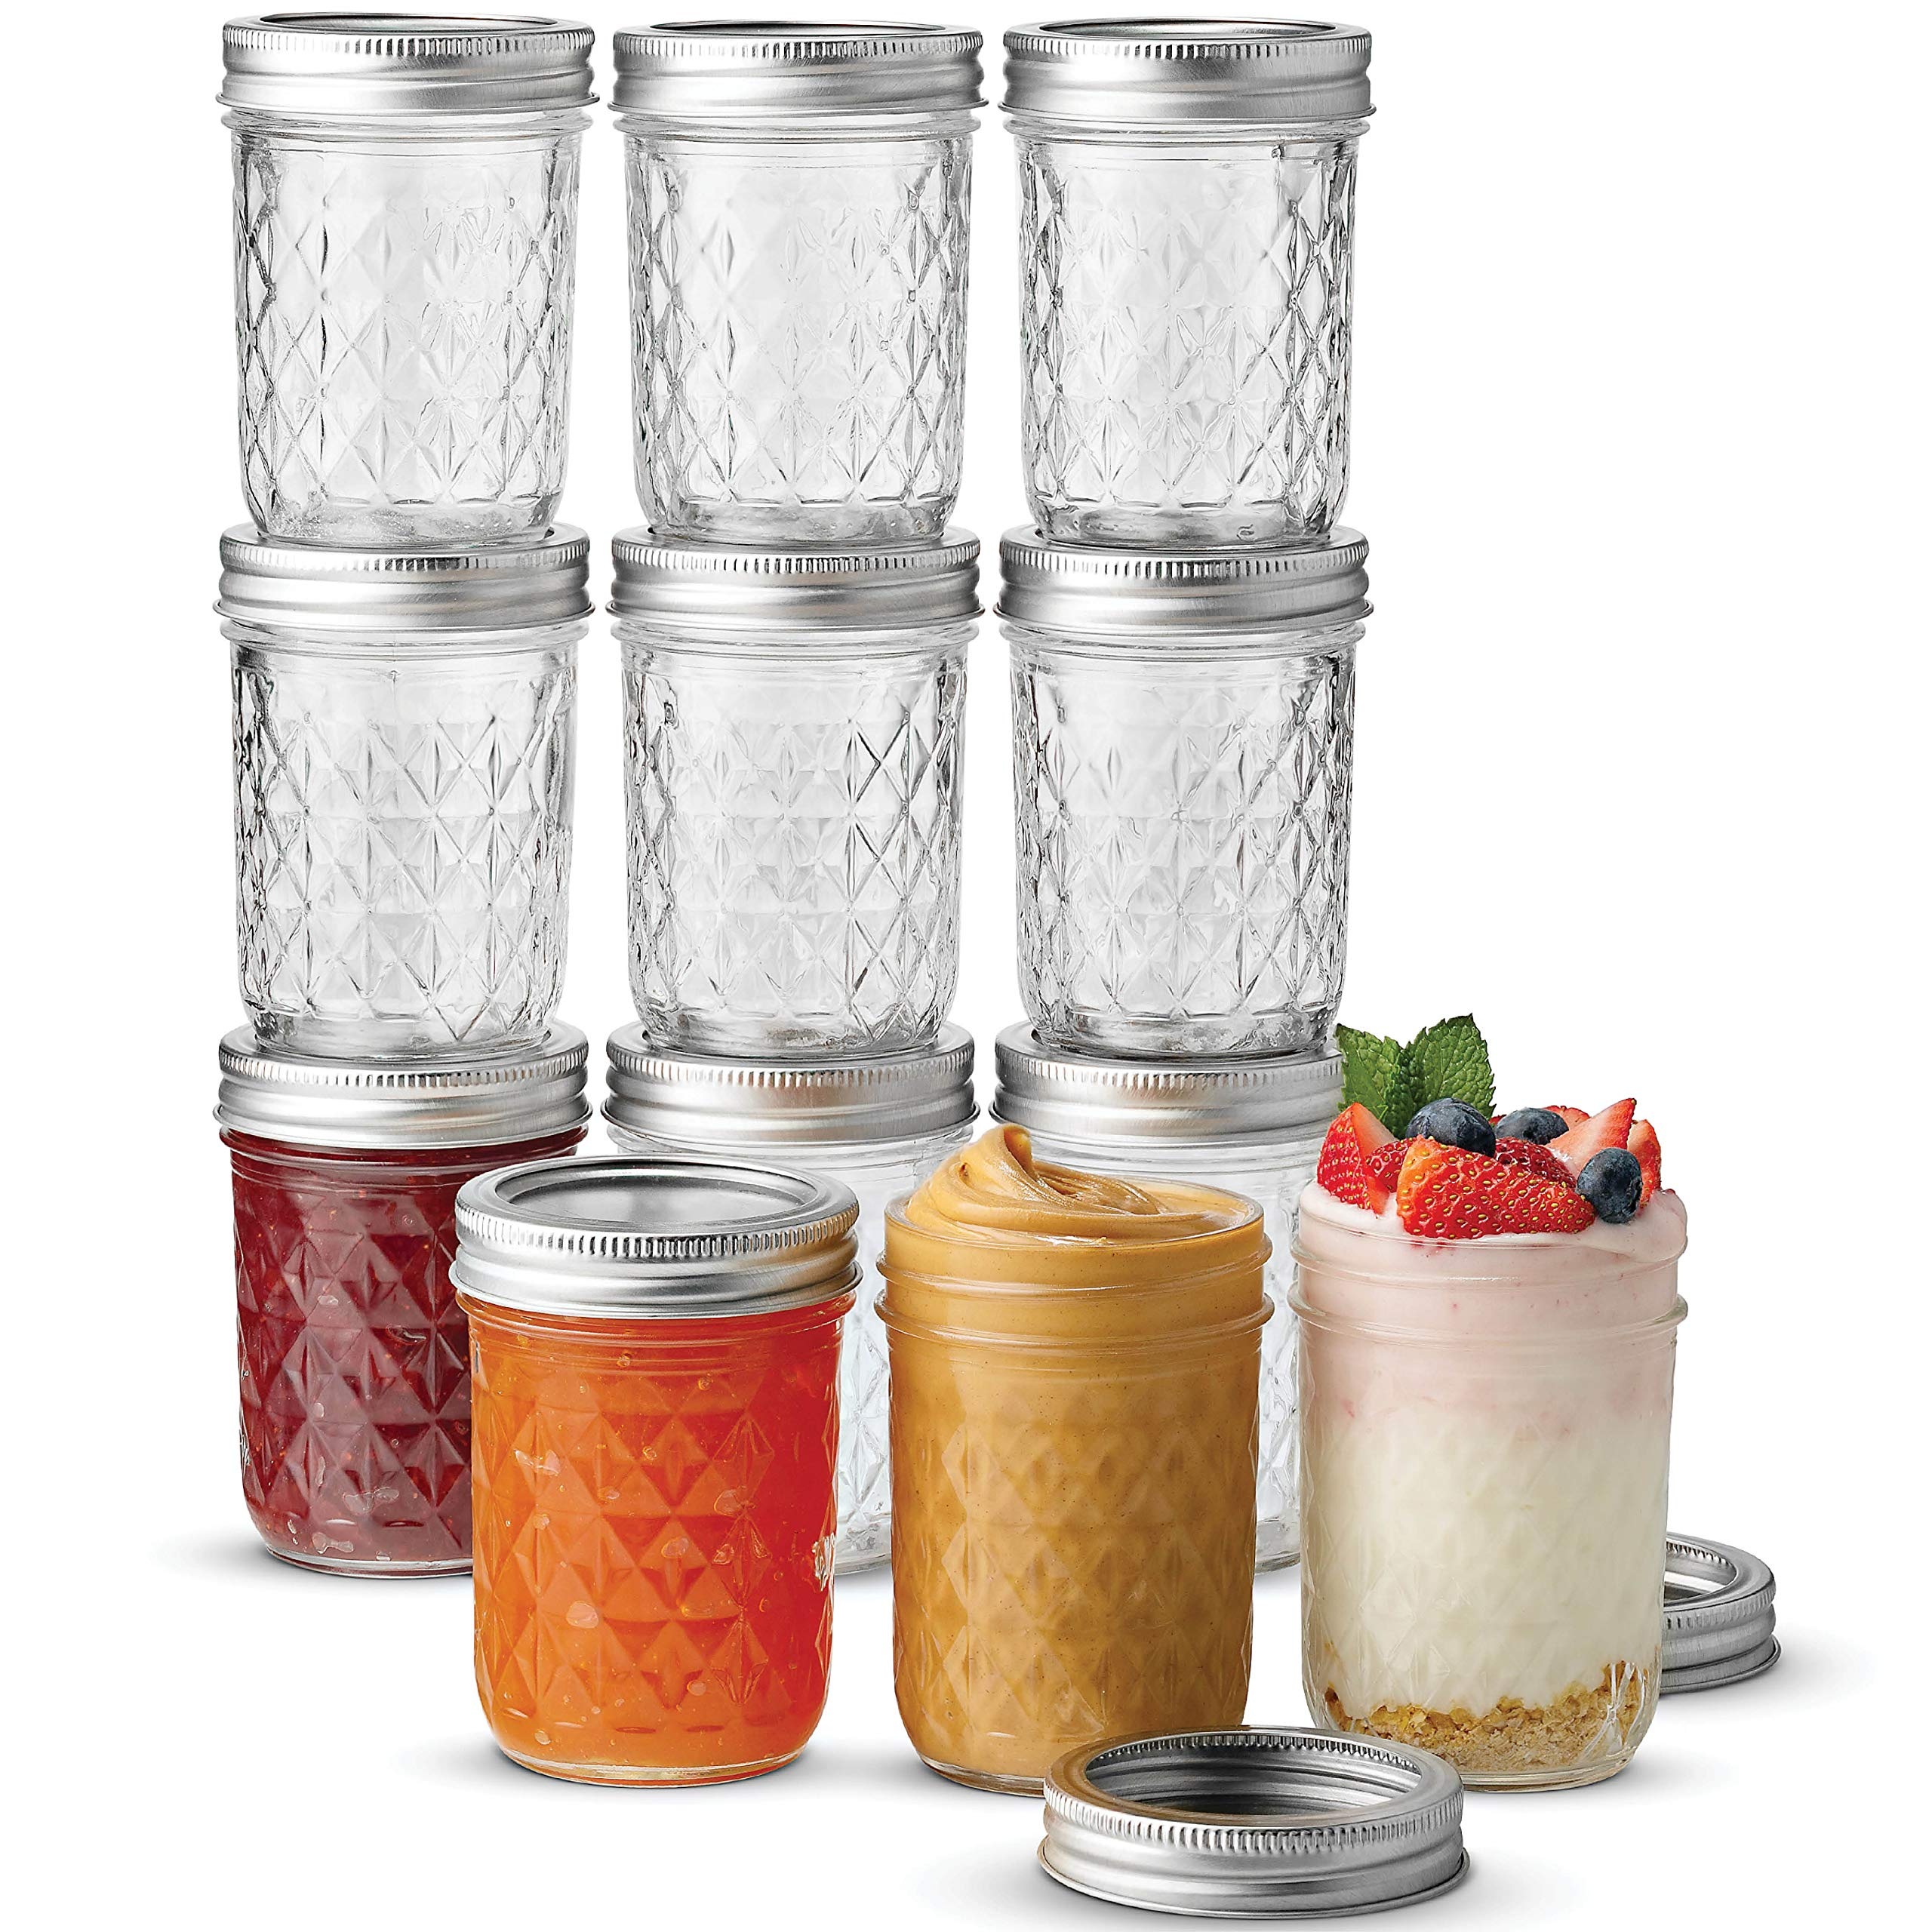 Ball Wide Mouth Mason Jars 8 oz, 12 Pack Canning Jelly Jars, With Wide Mouth Lids and Bands, For canning, Freezing, Fermenting, Pickling, Preserving - Microwave & Dishwasher Safe + SEWANTA Jar Opener